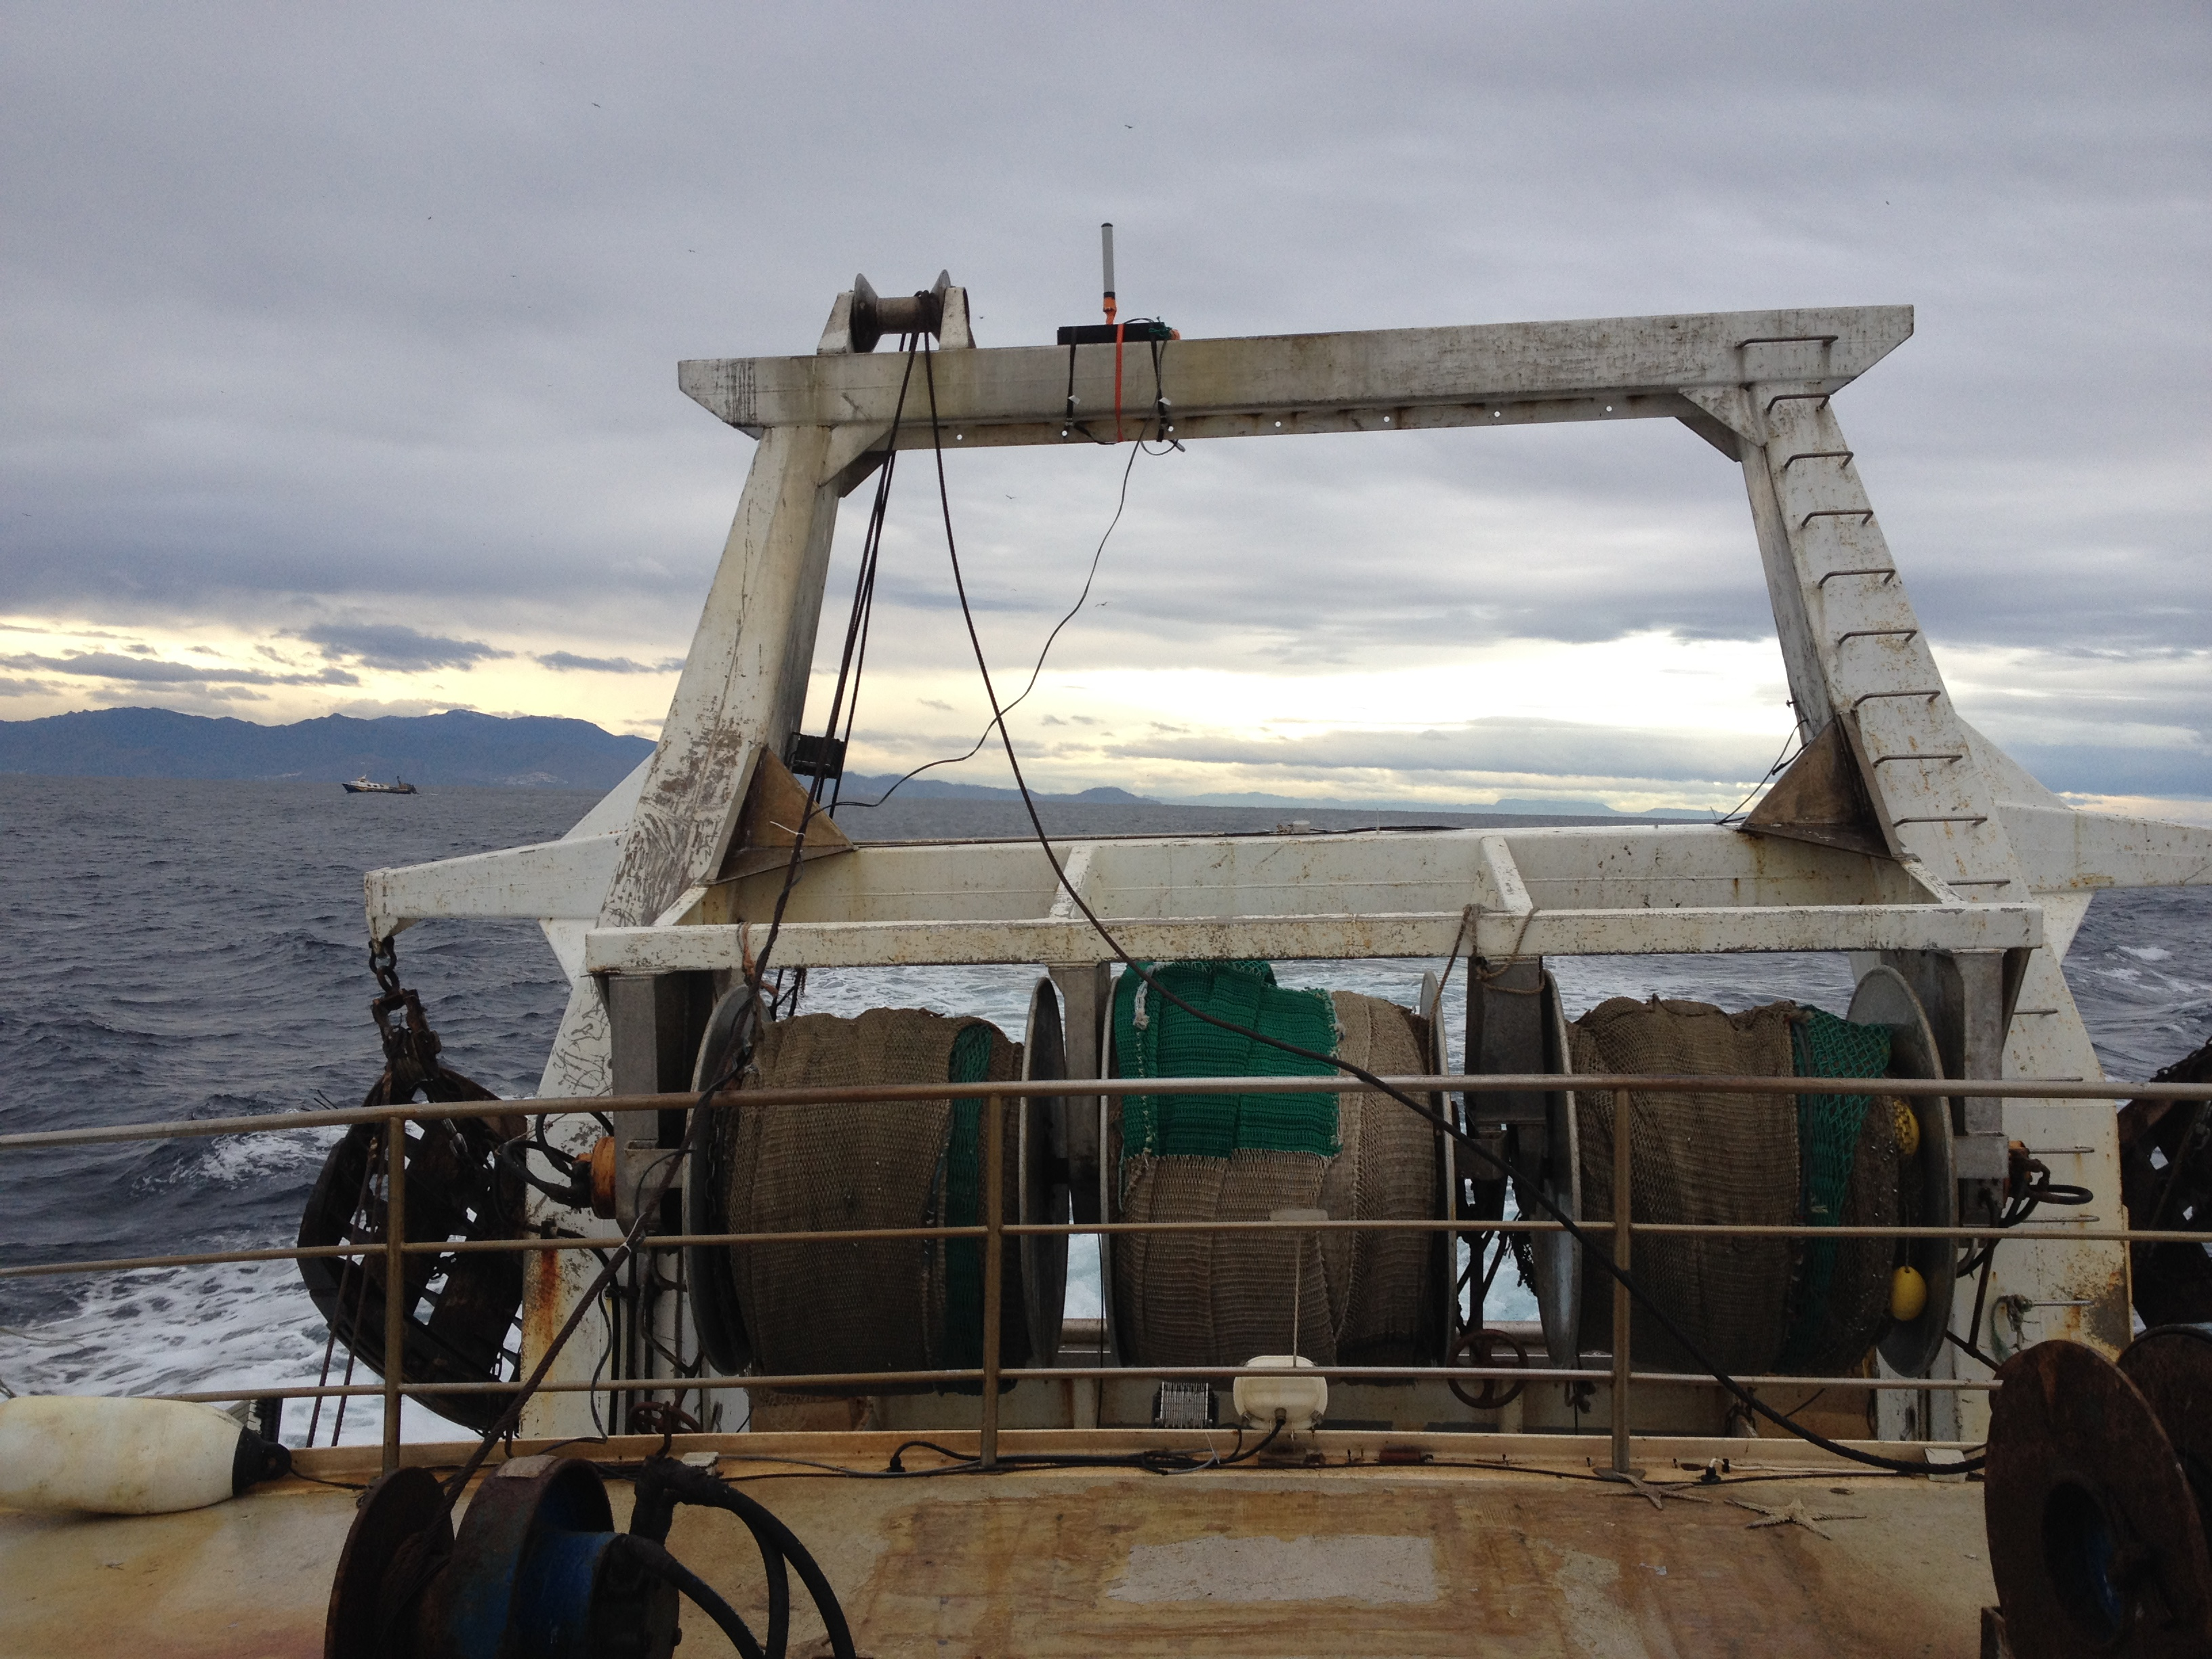 The goniometer antenna on top of trawl